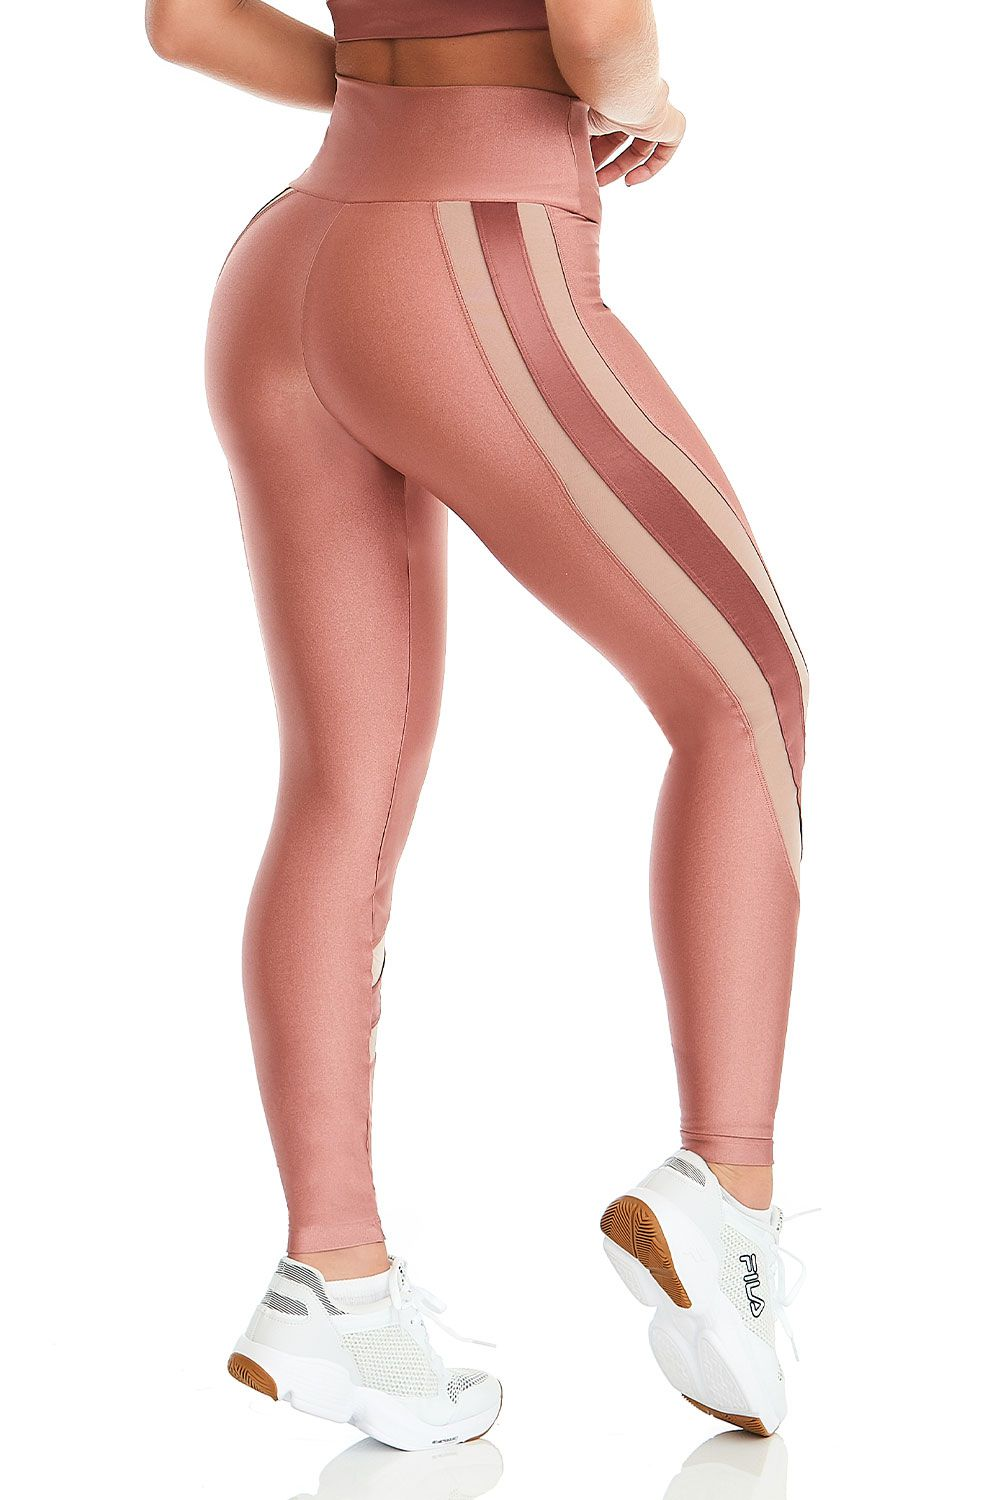 LEGGING WARRIOR CAJUBRASIL